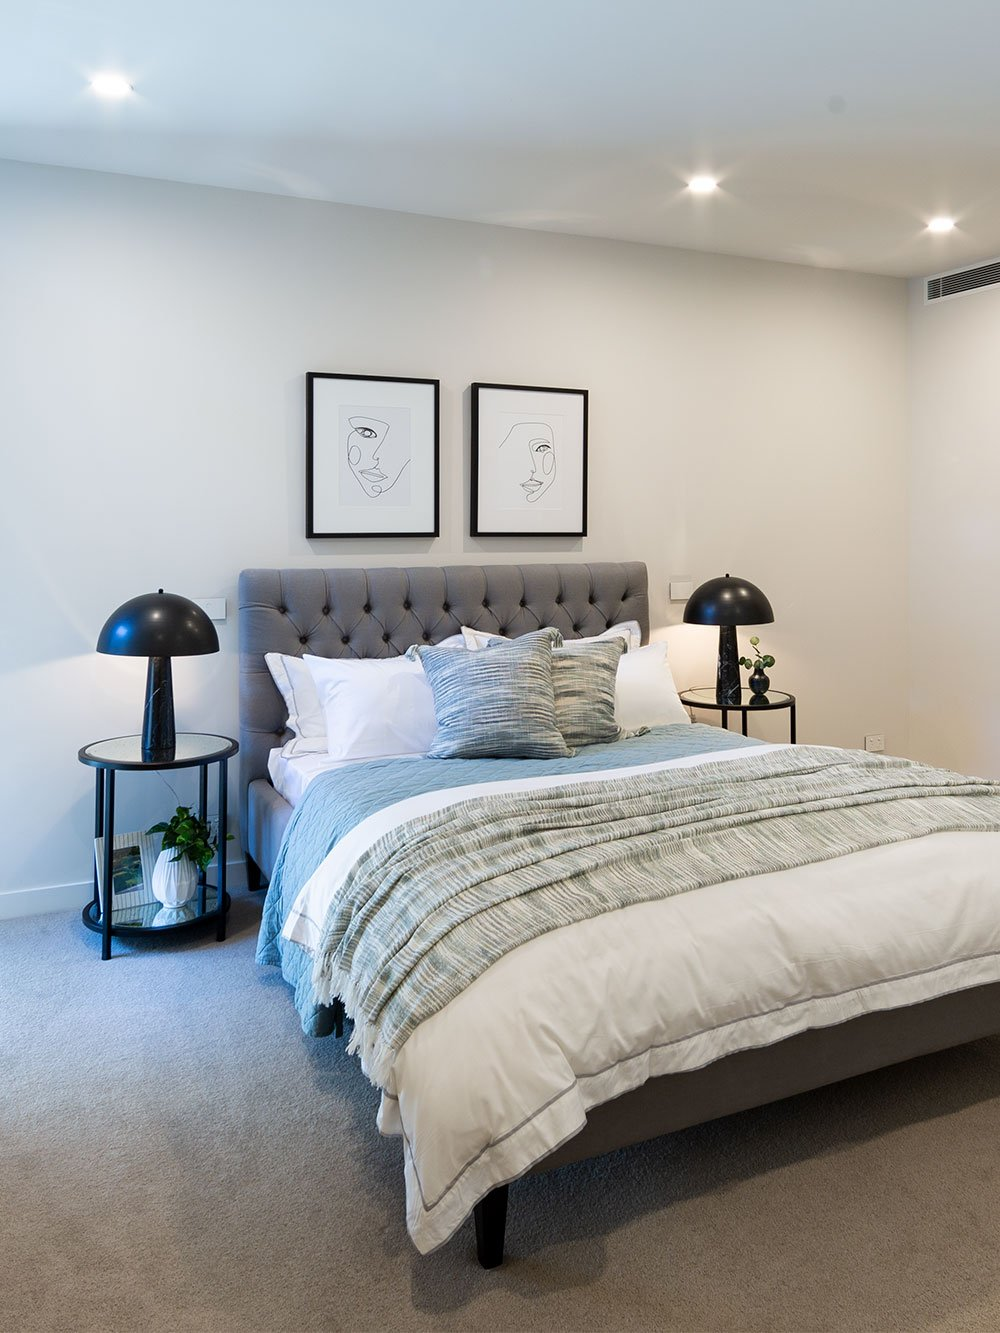 Retirement apartment bedroom at Baptcare The Orchards Templestowe